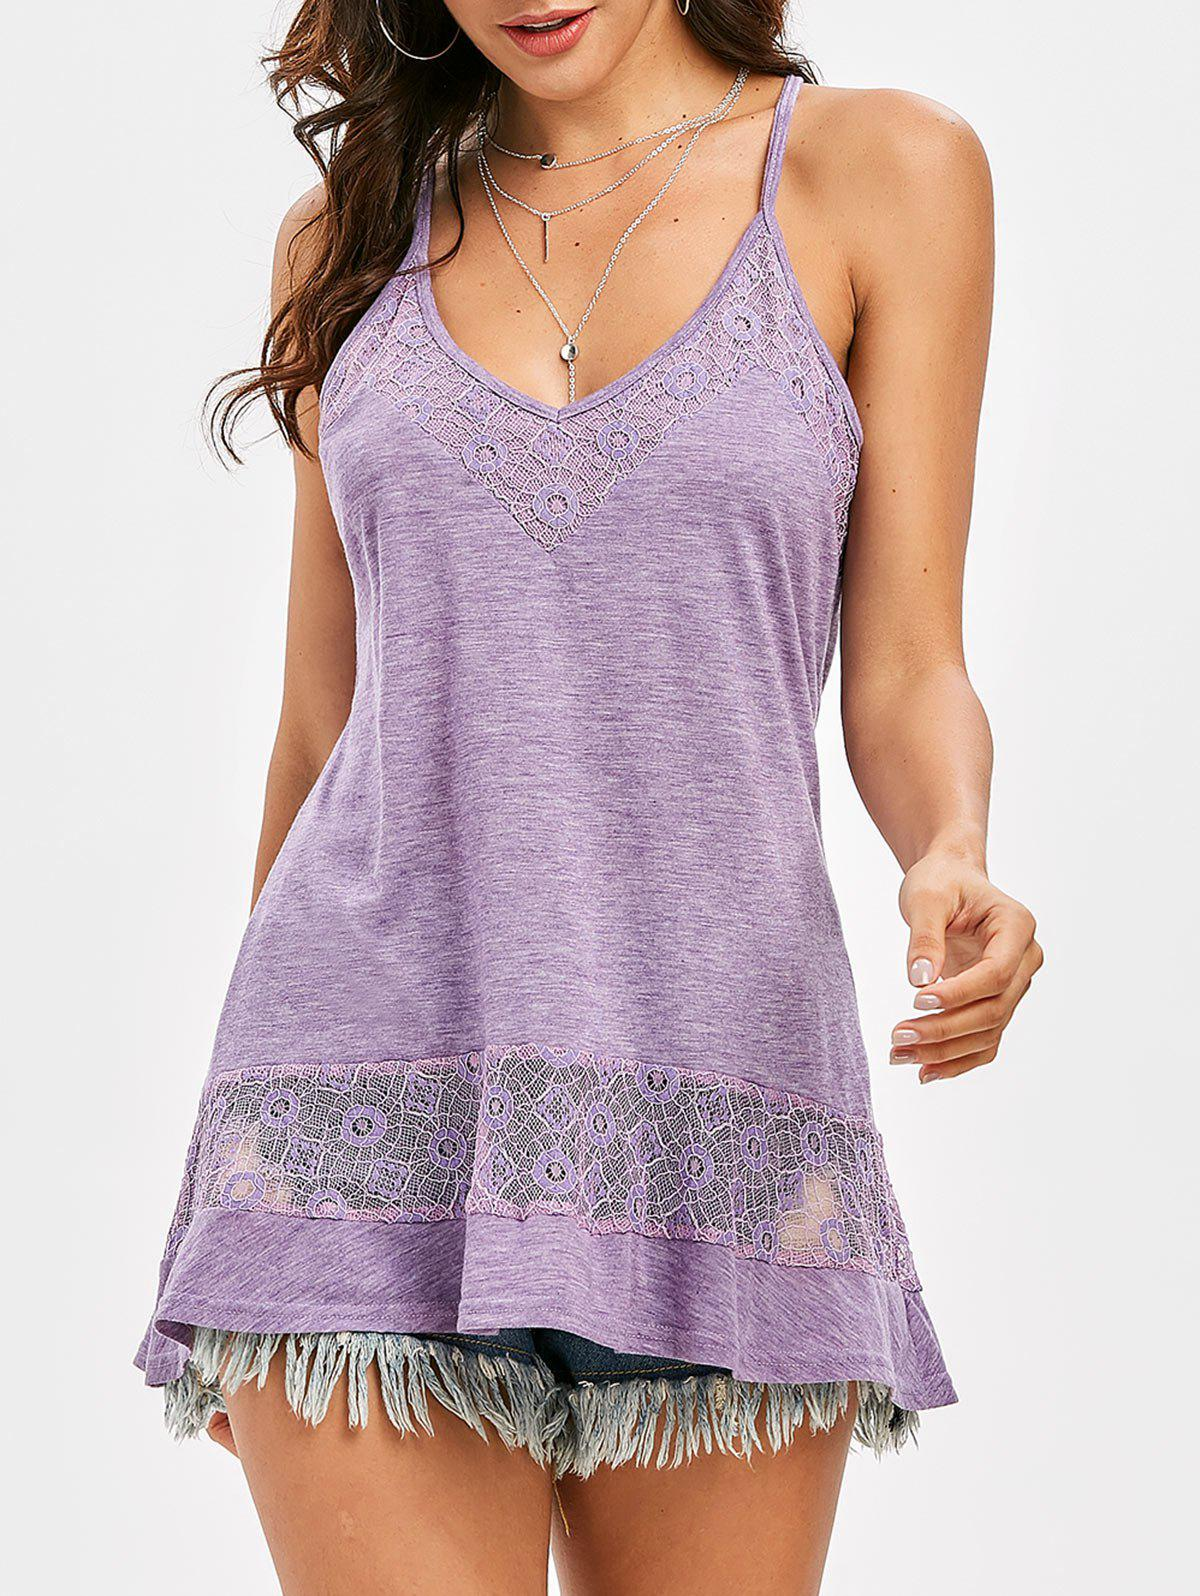 Flower Lace Insert Racerback Heather Camisole - WISTERIA PURPLE XL